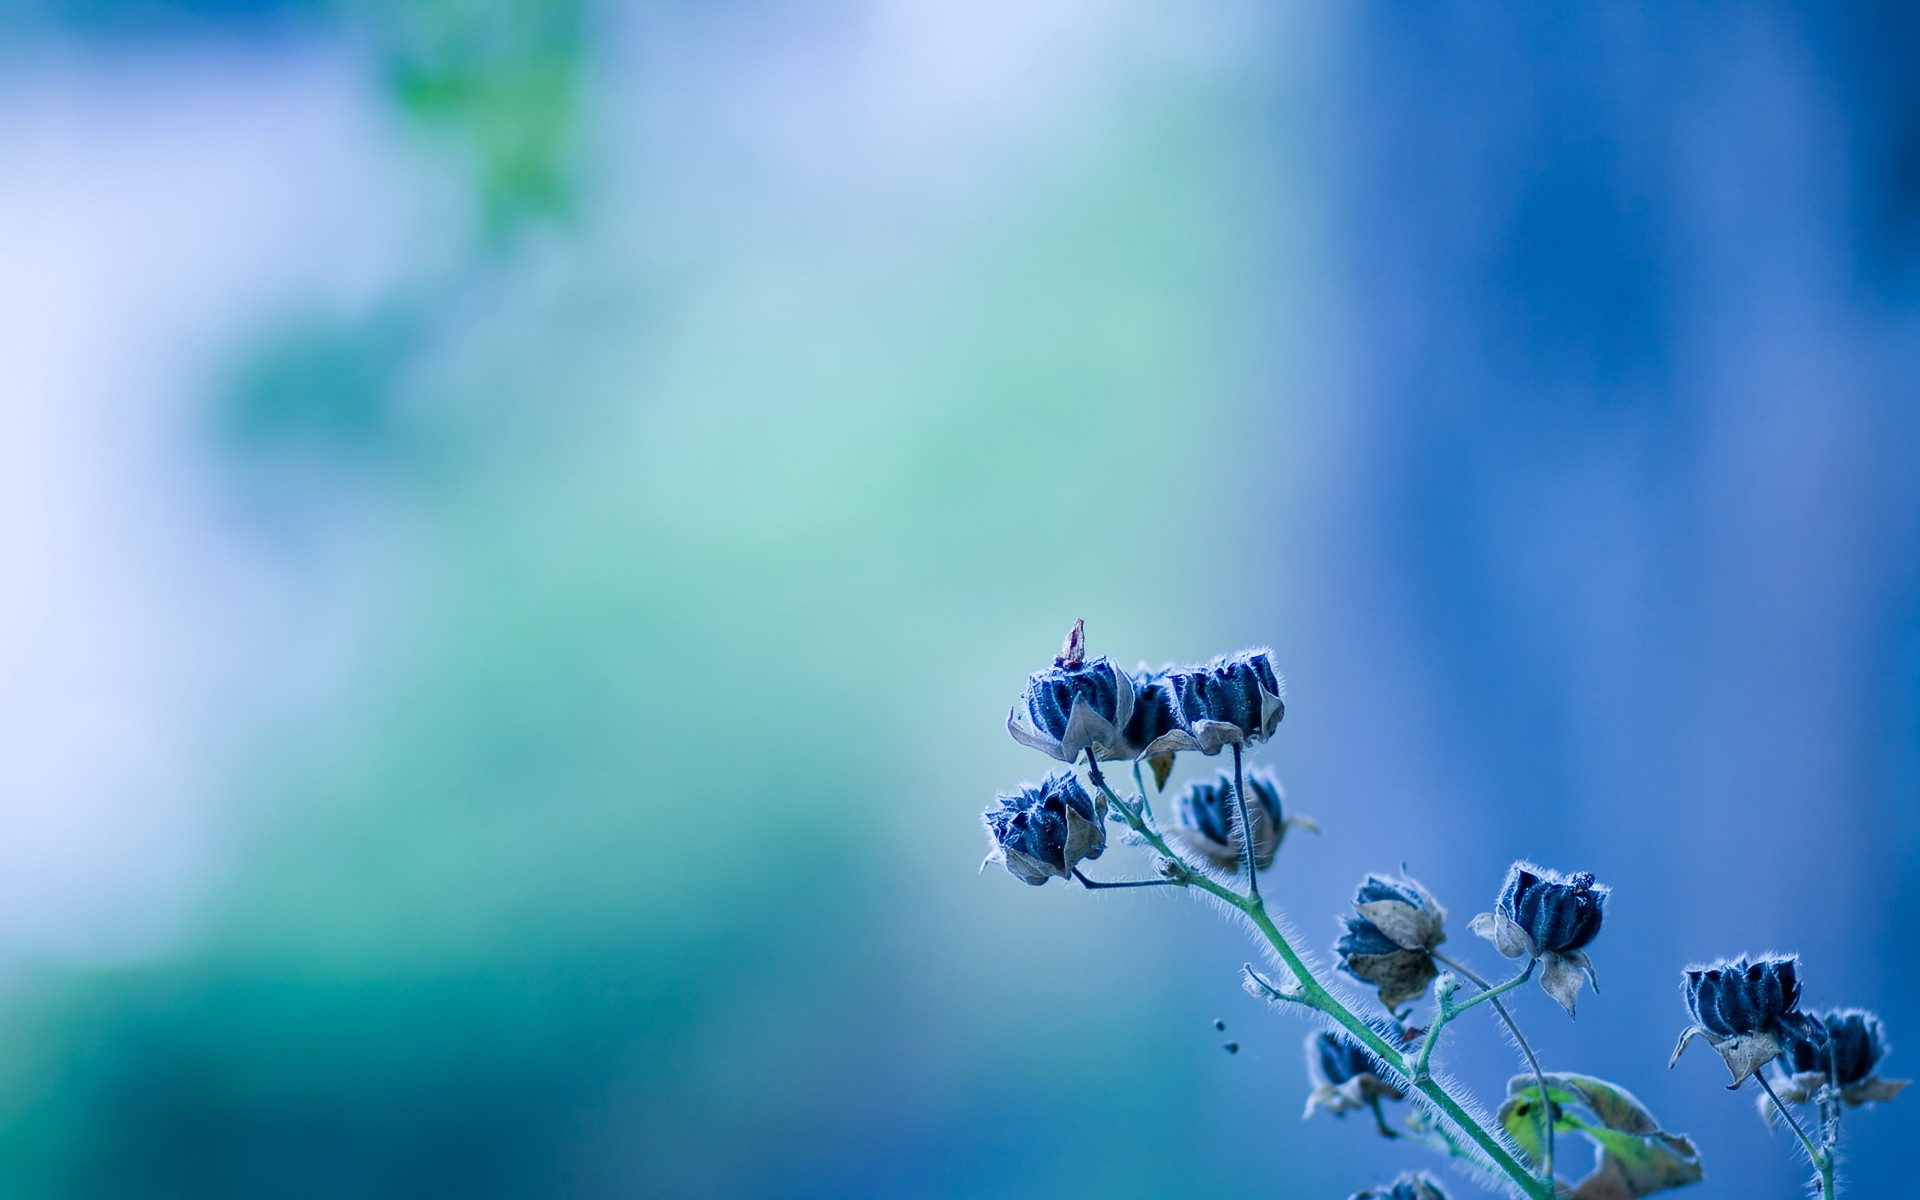 minimalistic, flowers, blue flowers, blurred background :: Wallpapers